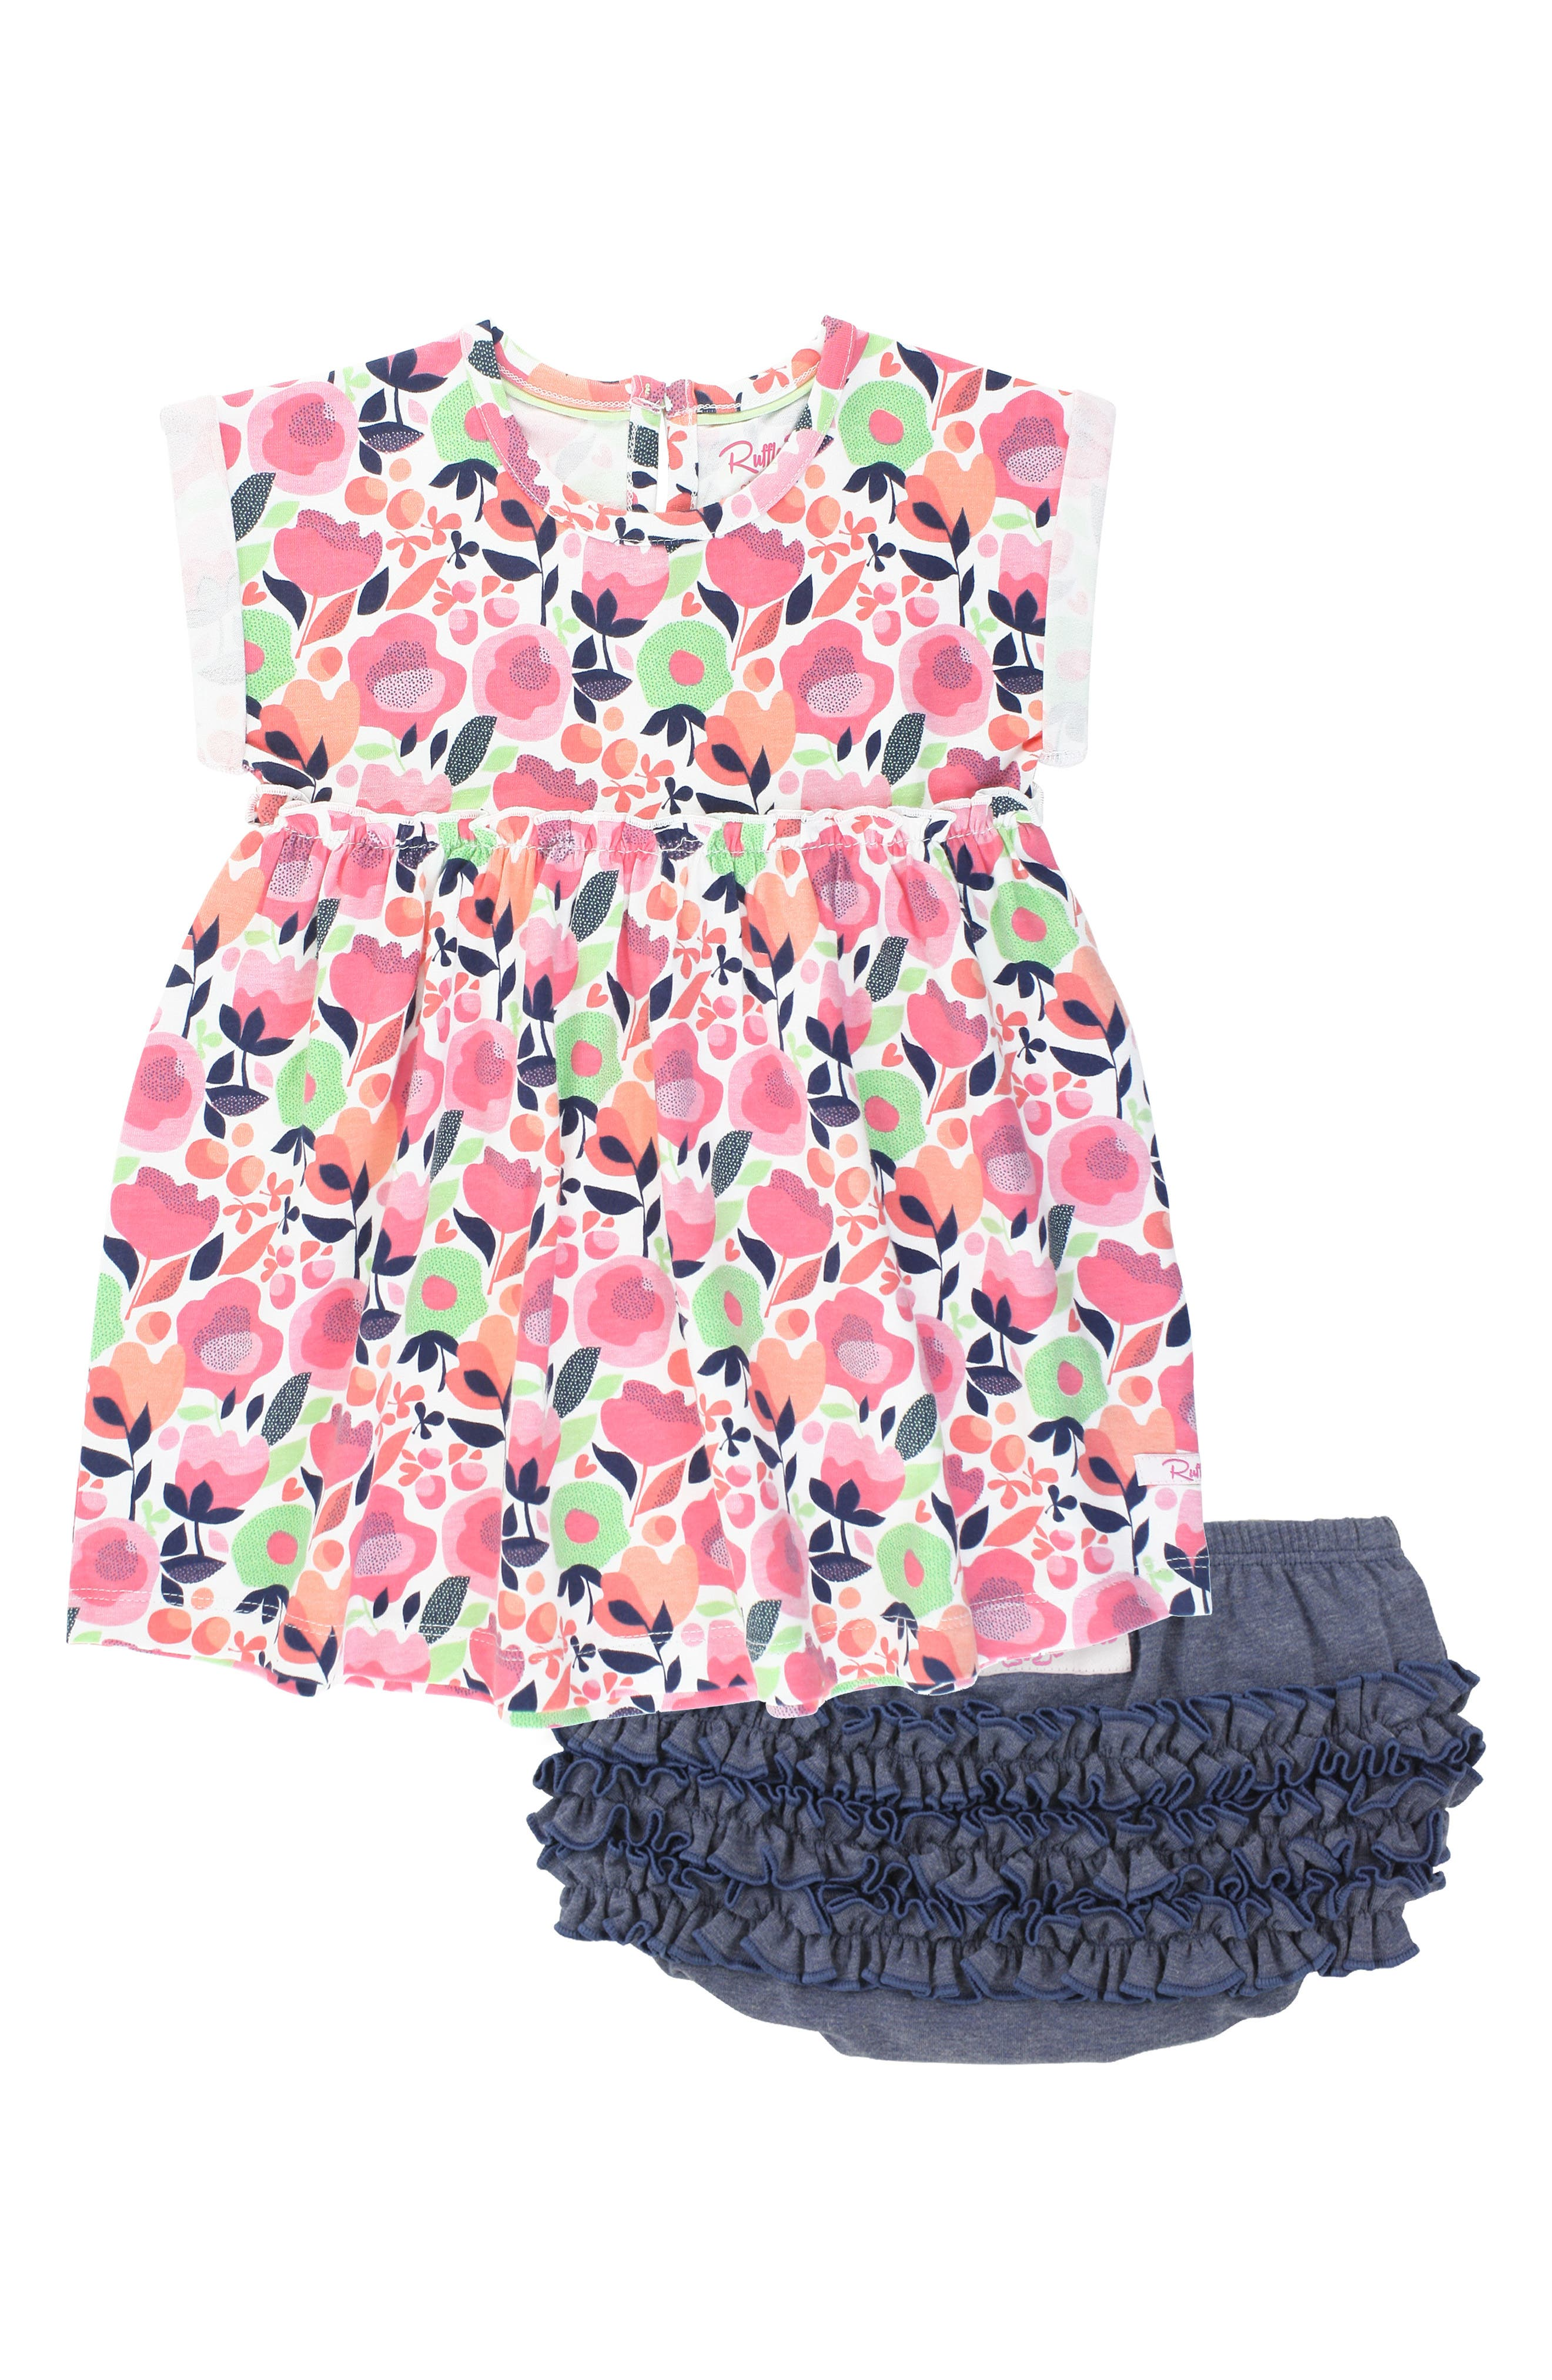 A stretch-cotton dress in a bright floral print and playfully ruffled bloomers come together to make this set a warm-weather favorite. Style Name: Rufflebutts Best Buds Dress & Ruffle Bloomers Set (Baby). Style Number: 6036371. Available in stores.